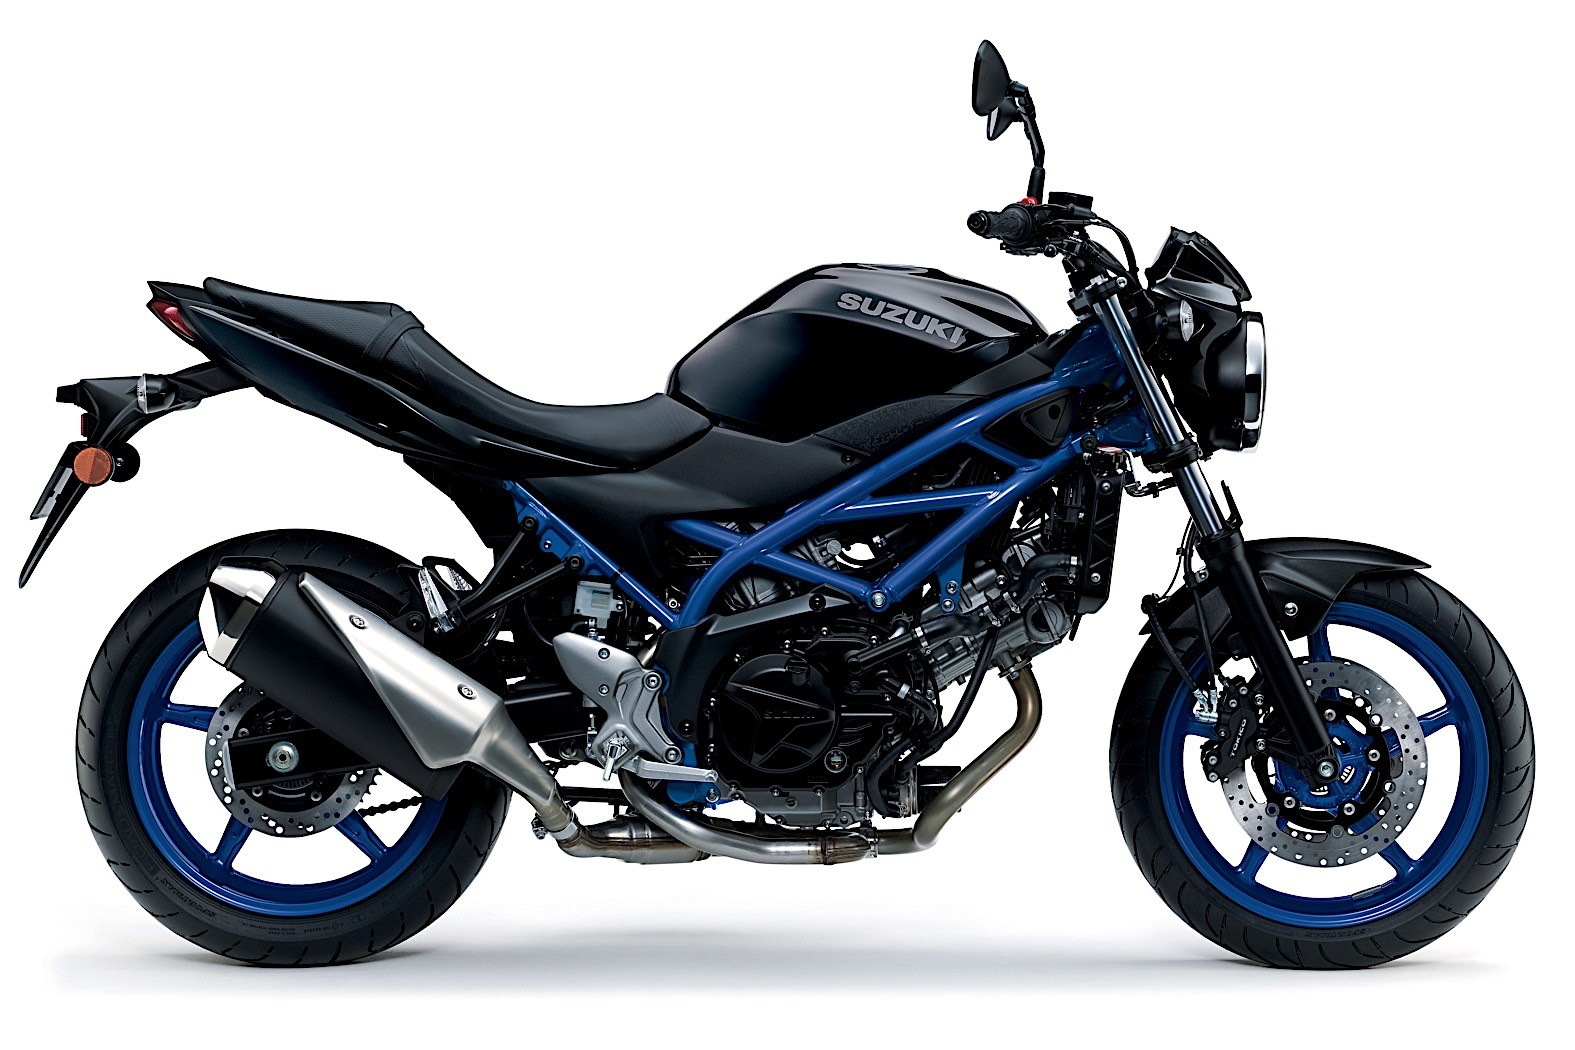 2019-suzuki-motorcycles-shine-in-new-colors-at-the-motorcycle-live-37